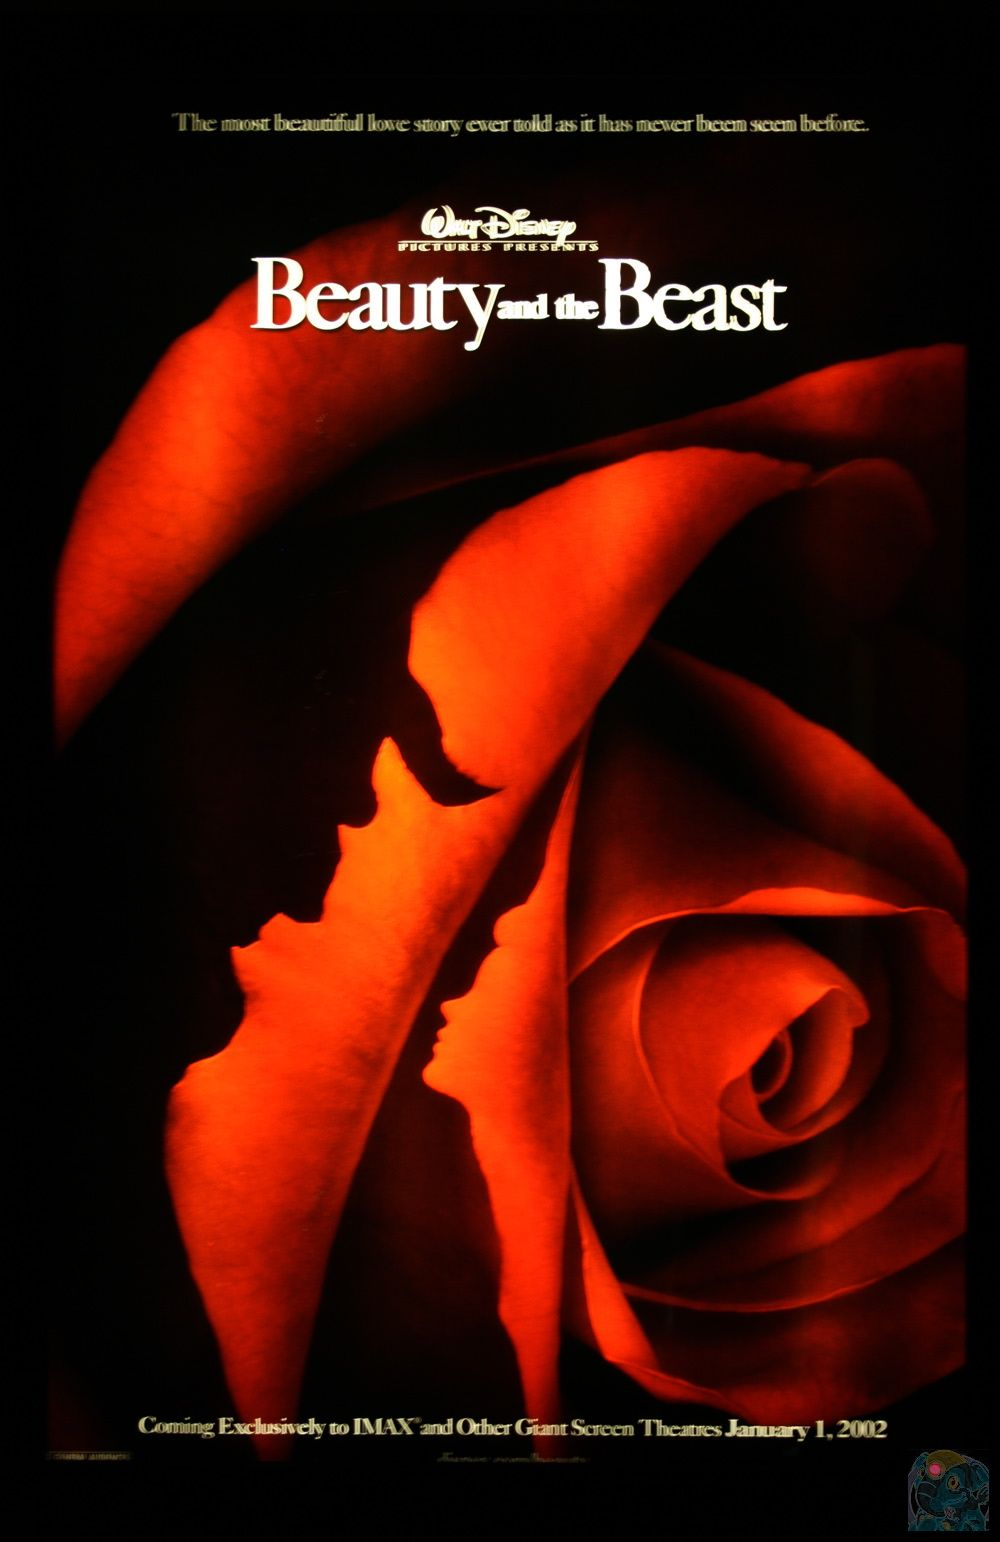 One Of My Favorite Disney Movies This Poster I Believe Does The Movie The Best Justice Beauty And The Beast Disney Beauty And The Beast Disney Movie Posters